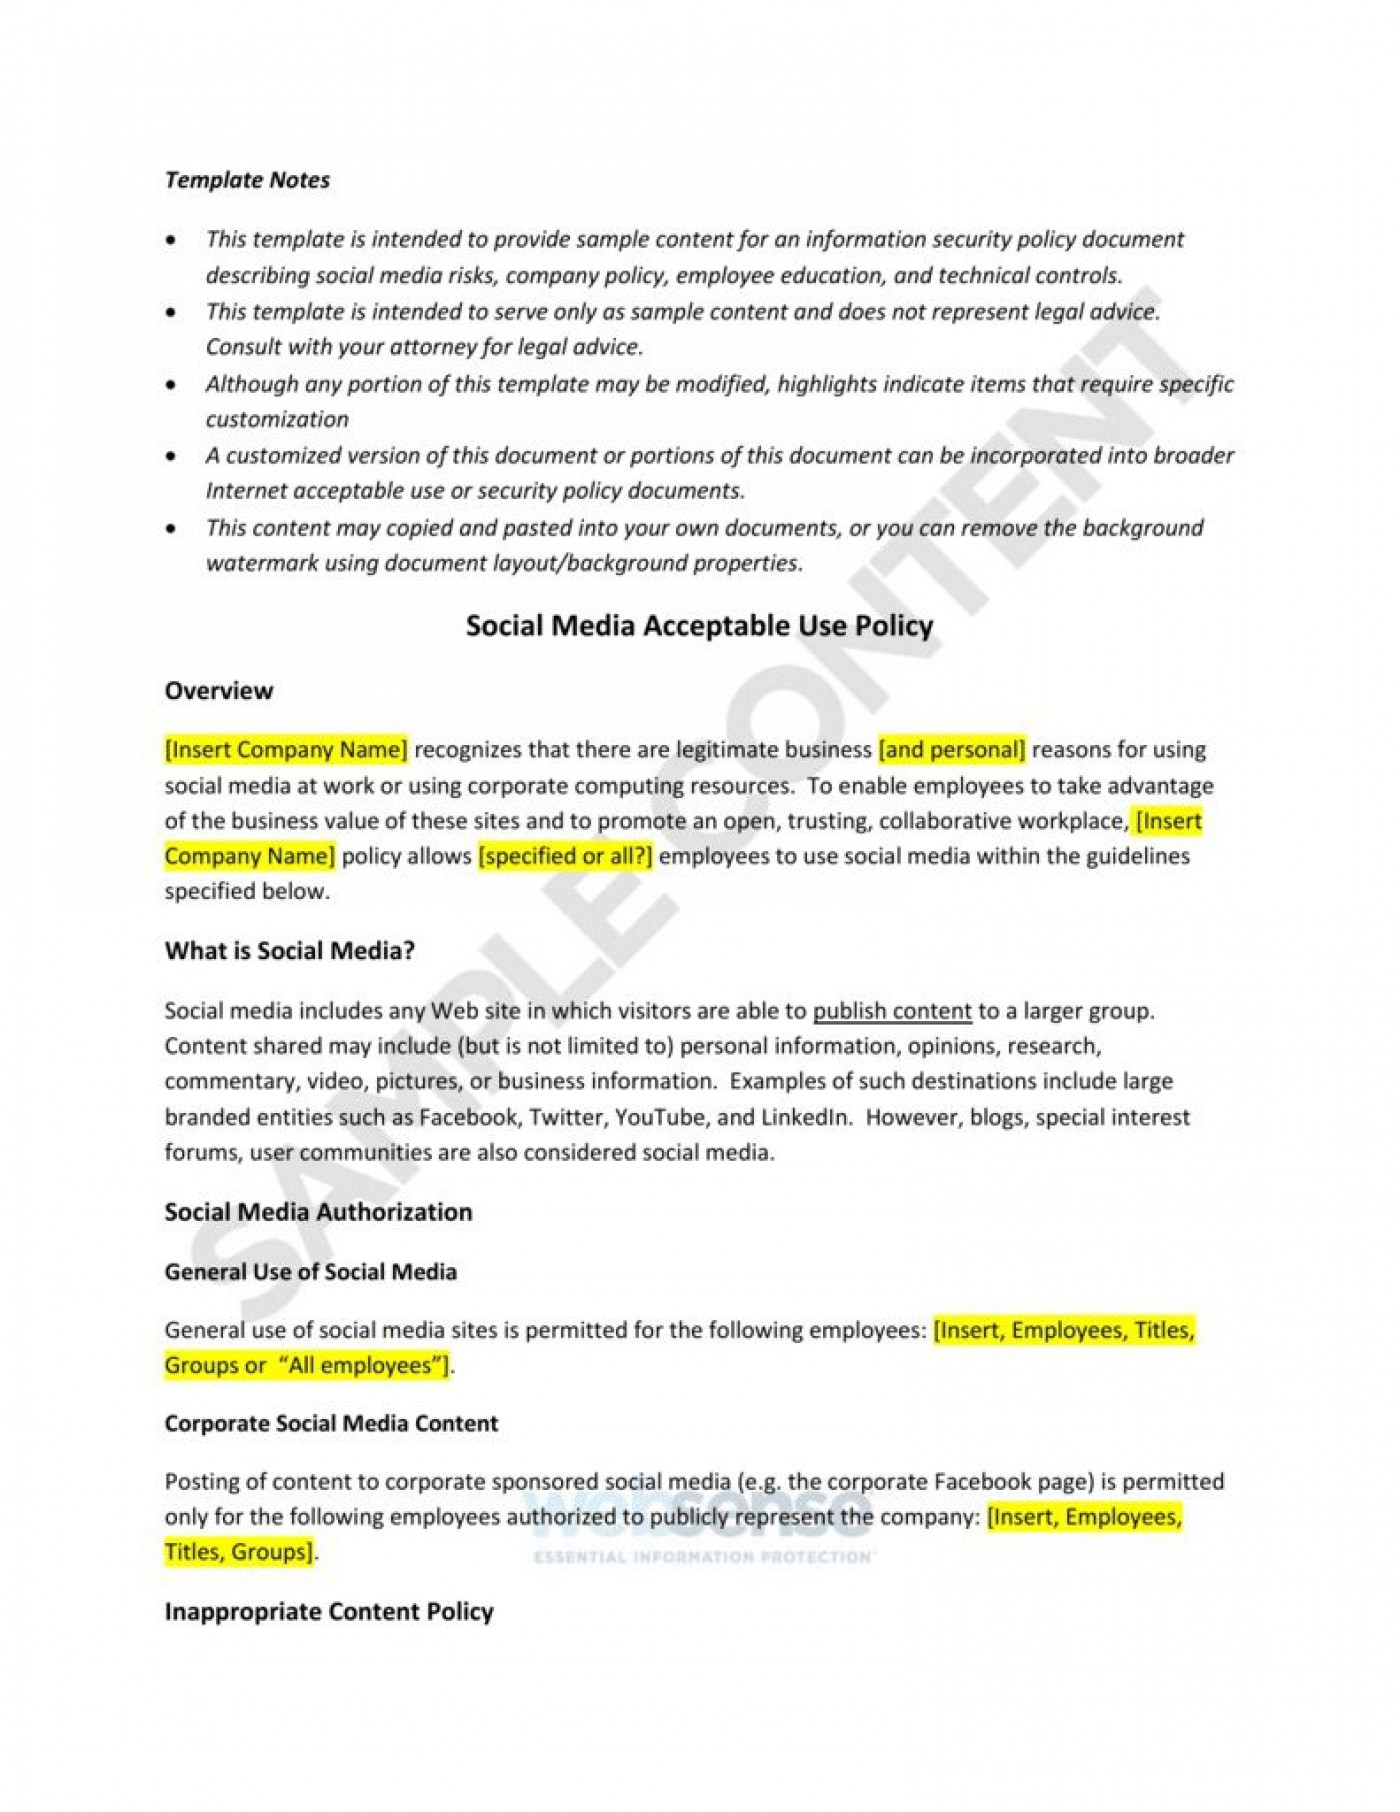 003 Amazing Social Media Policie Template High Definition  Simple Policy Australia Example For Small Busines1400